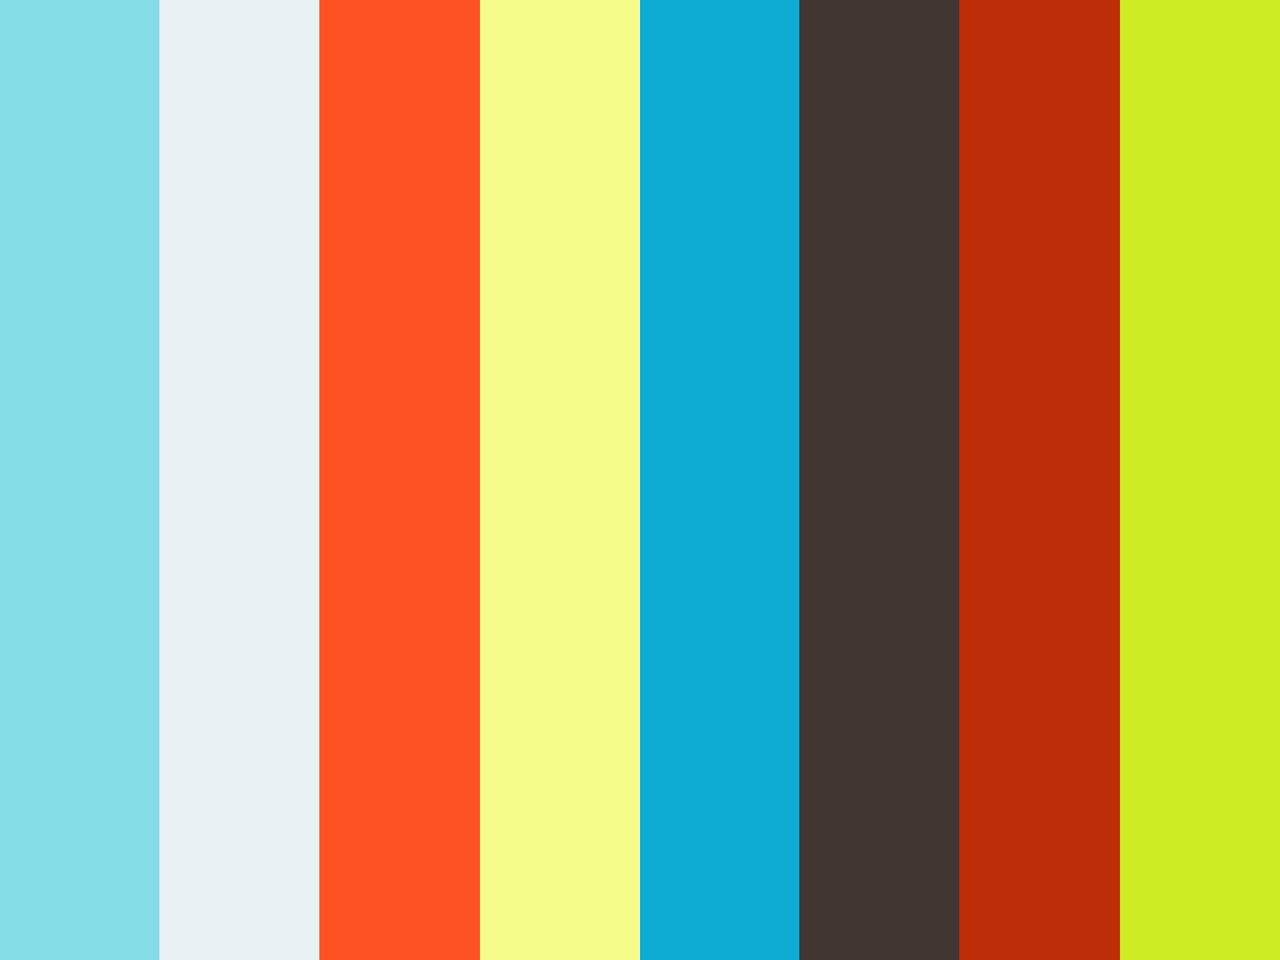 Energy Conversion v.s. Transformation